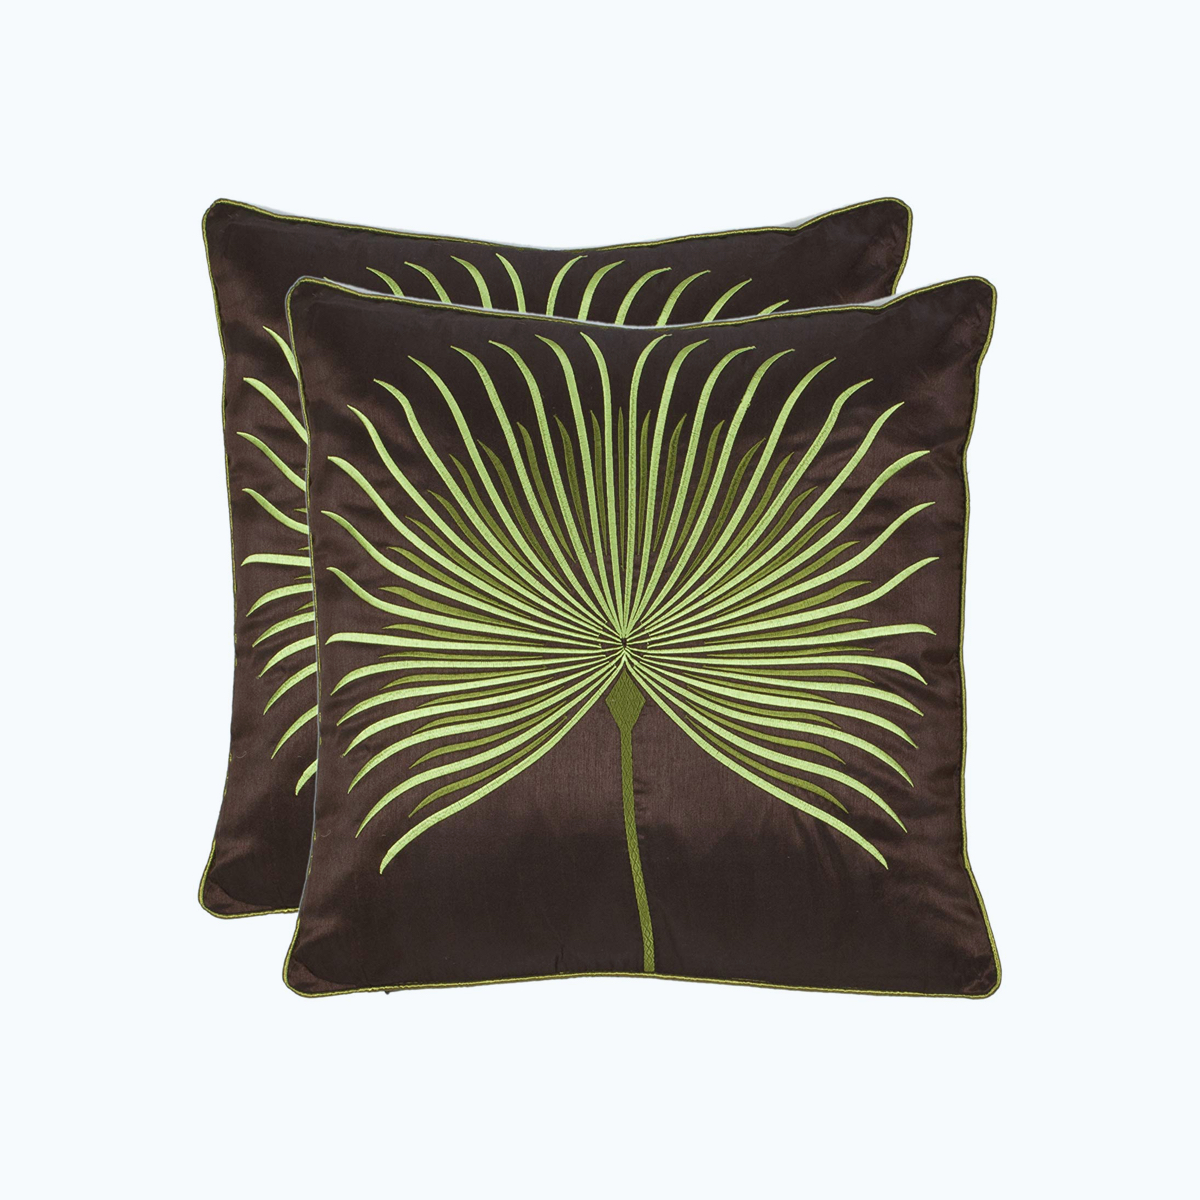 Safavieh Dandelion Pillow